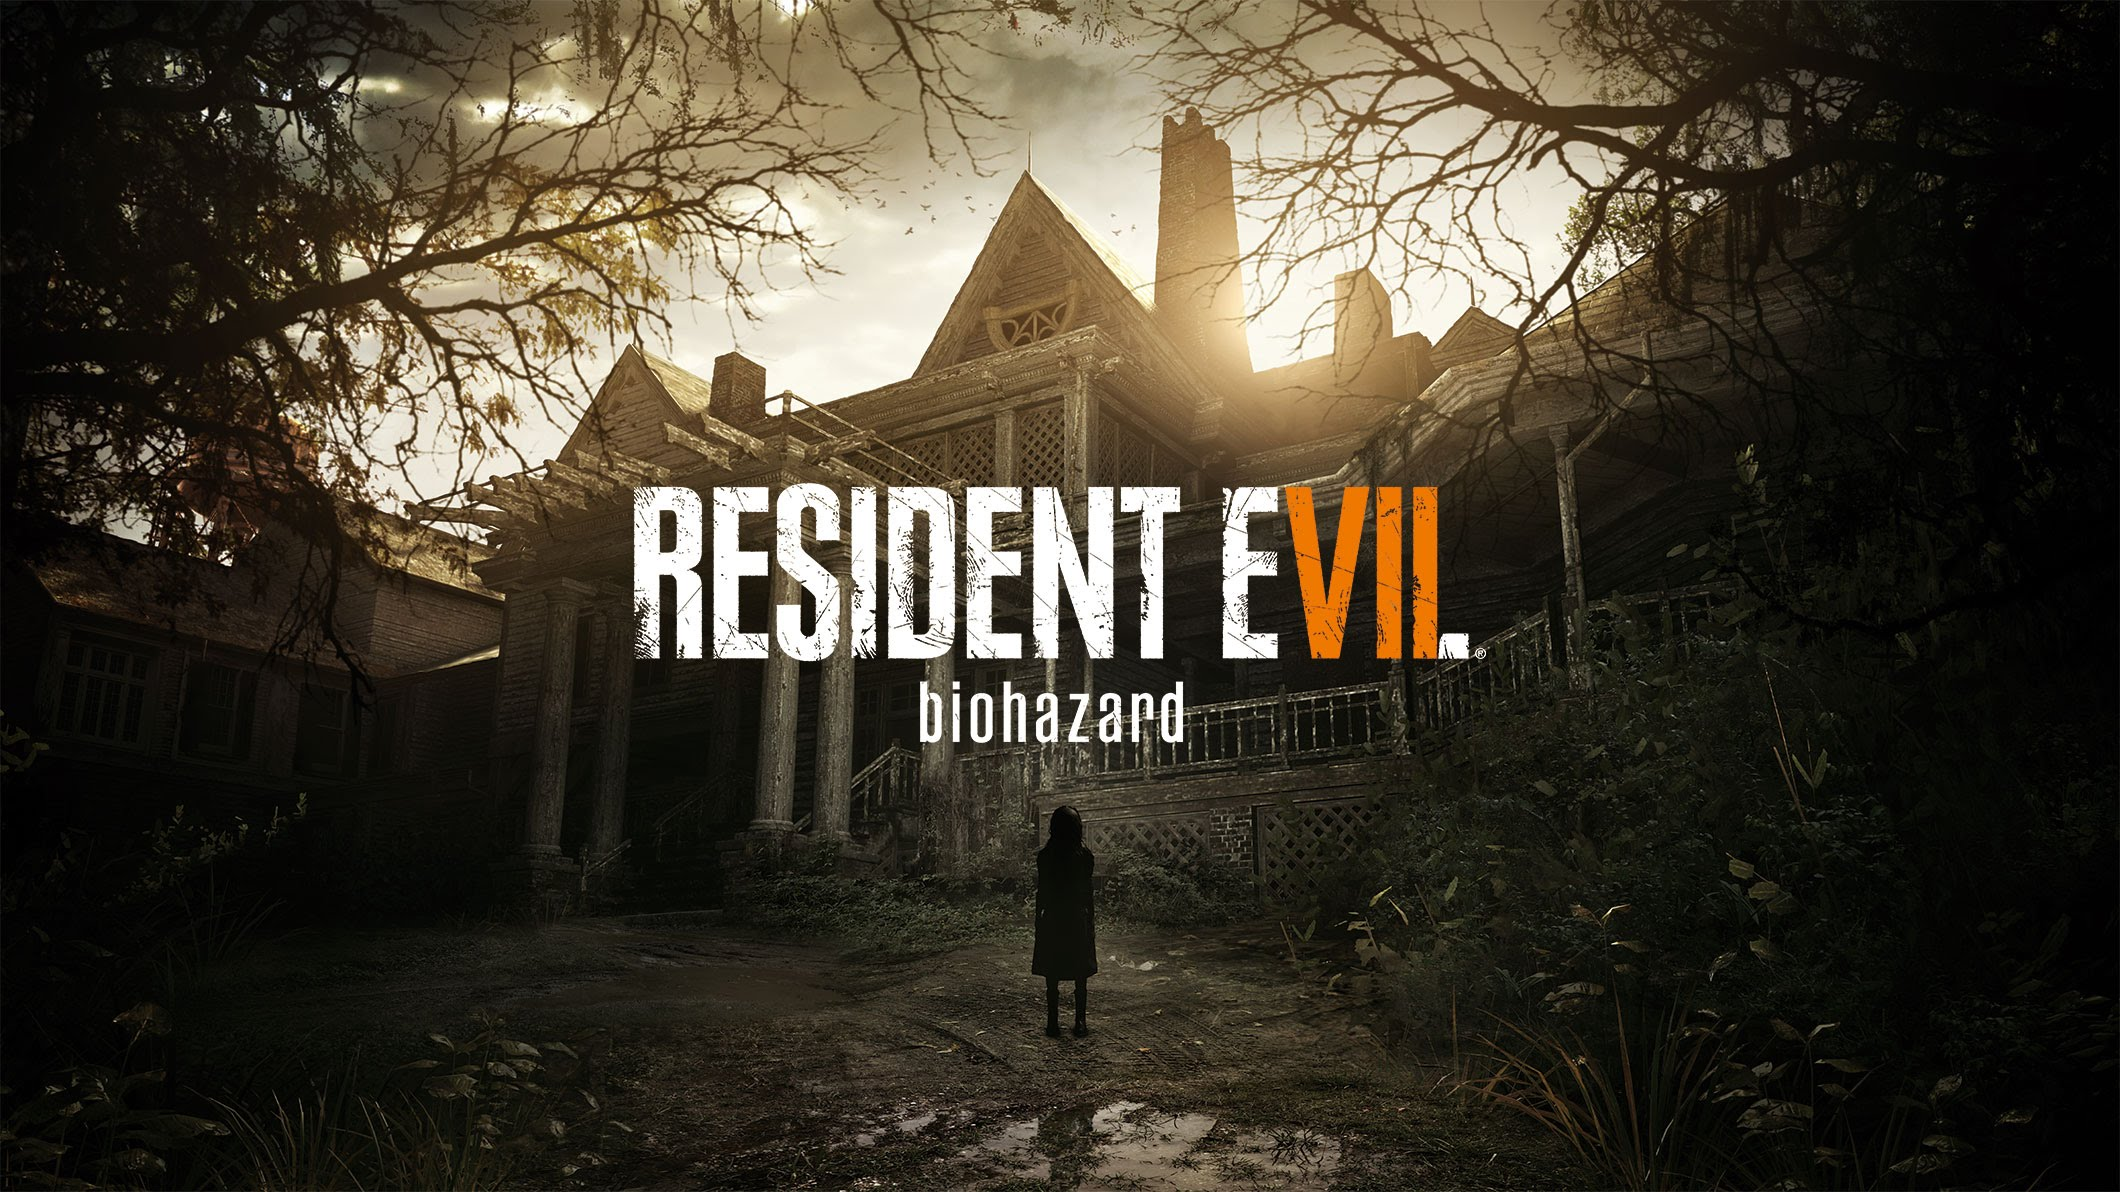 Disponibile sul PSN Resident Evil 7 Kitchen, demo per PlayStation VR